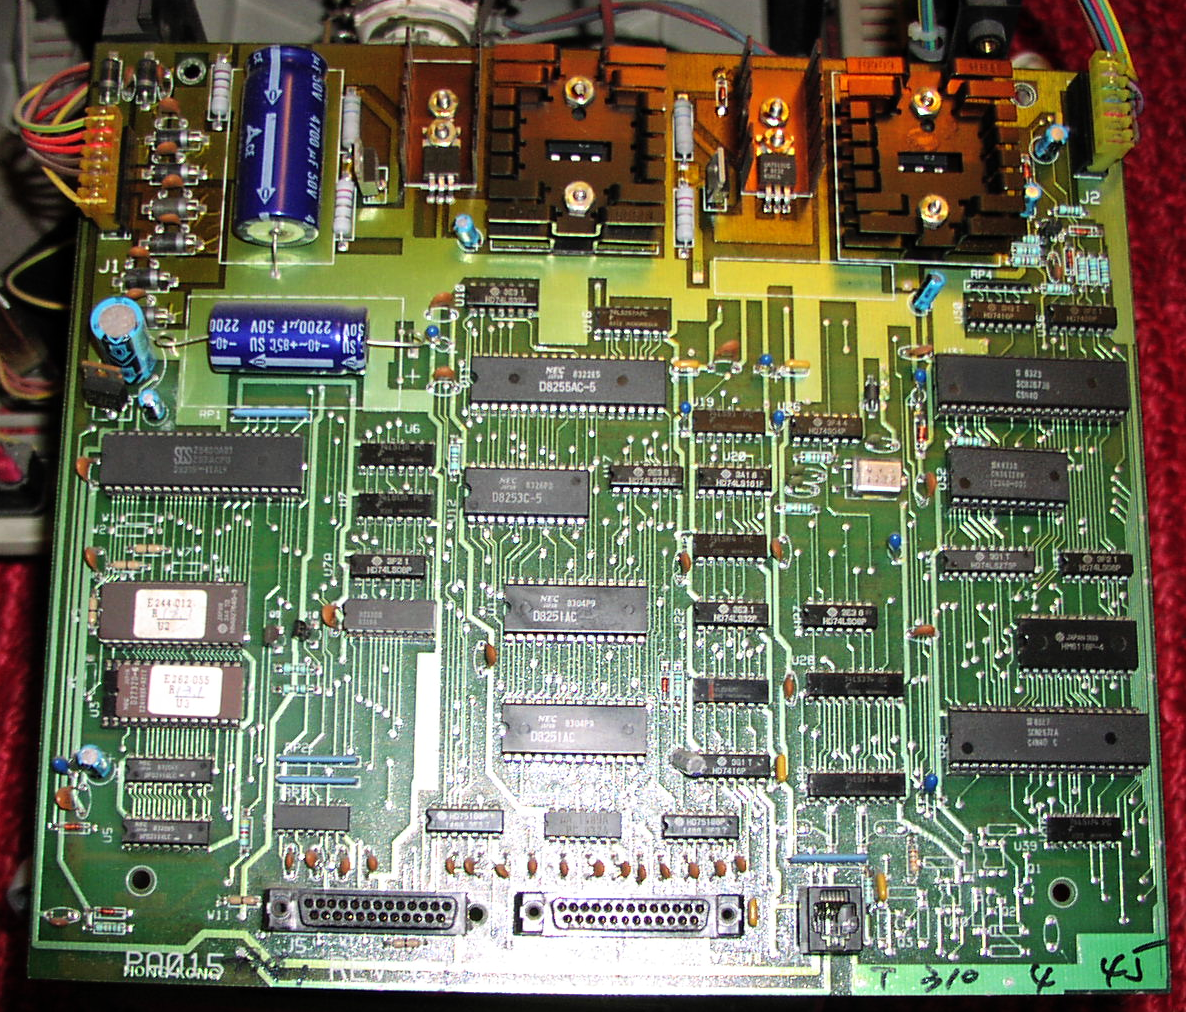 wikipedia:Visual 50 computer. It shows the SGS (now ST Microelectronics) Z8400AB1 CPU, as well as all the other components. This computer has not daughter